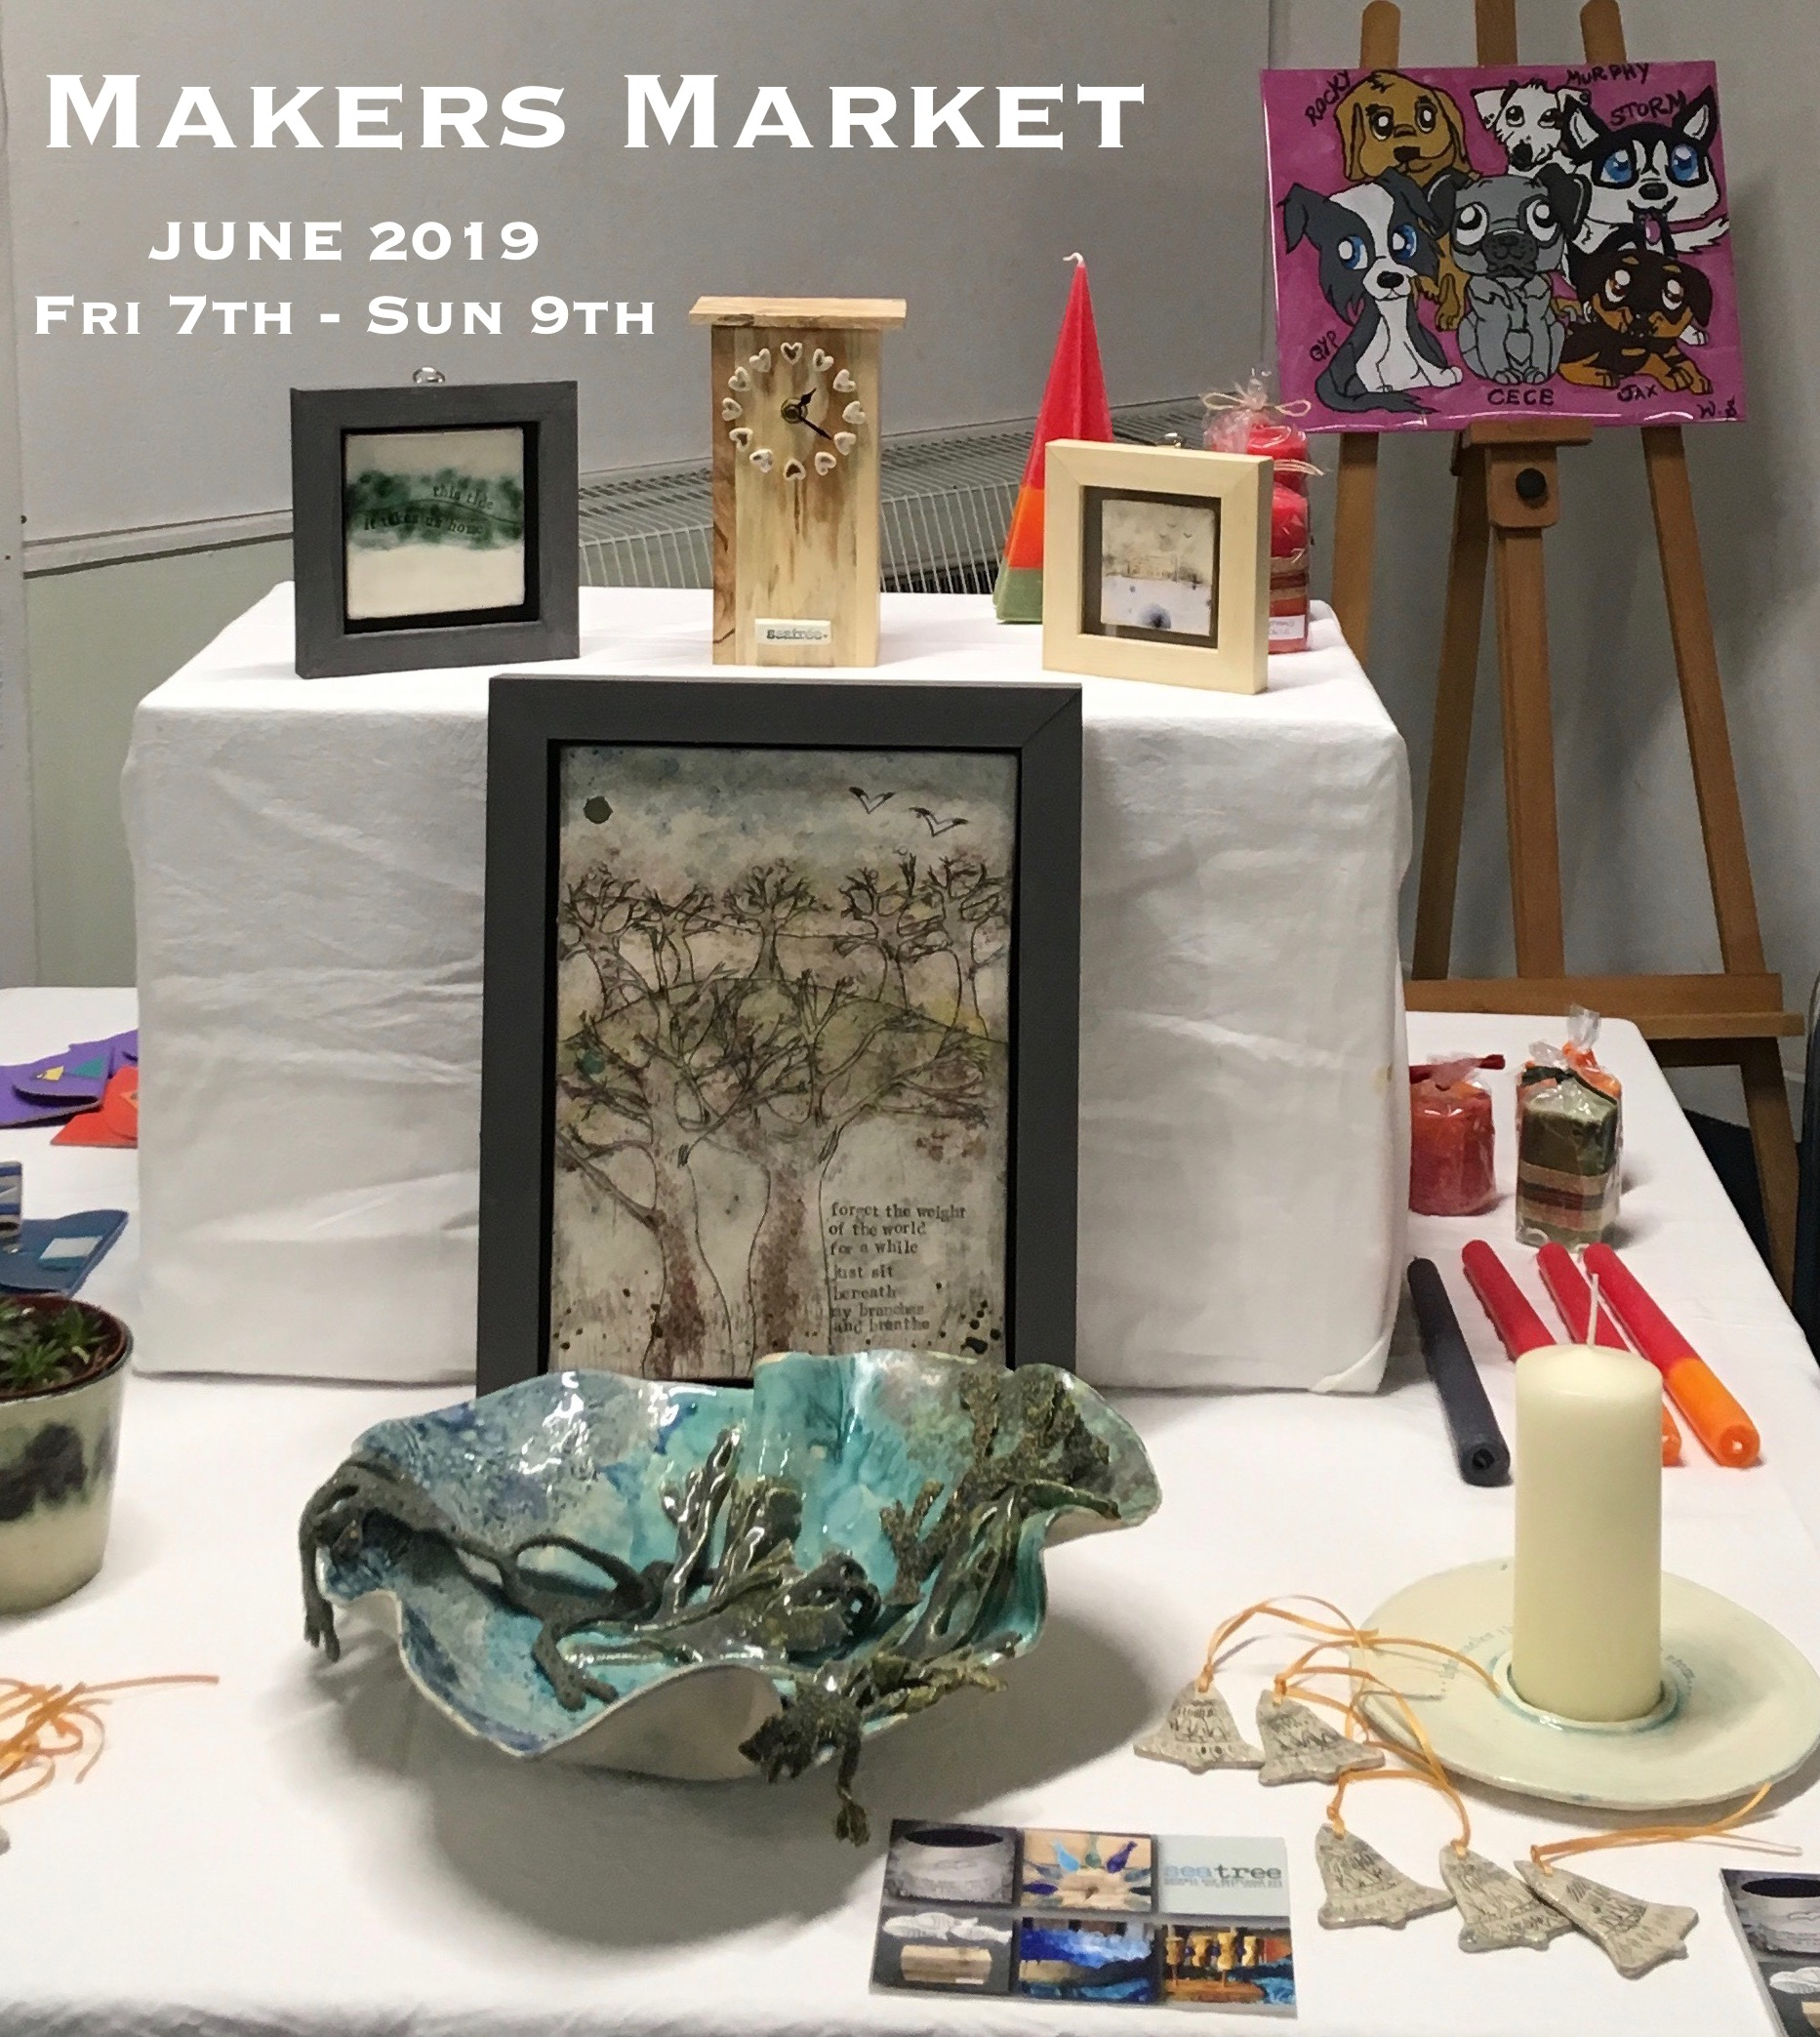 Makers market 1.jpg